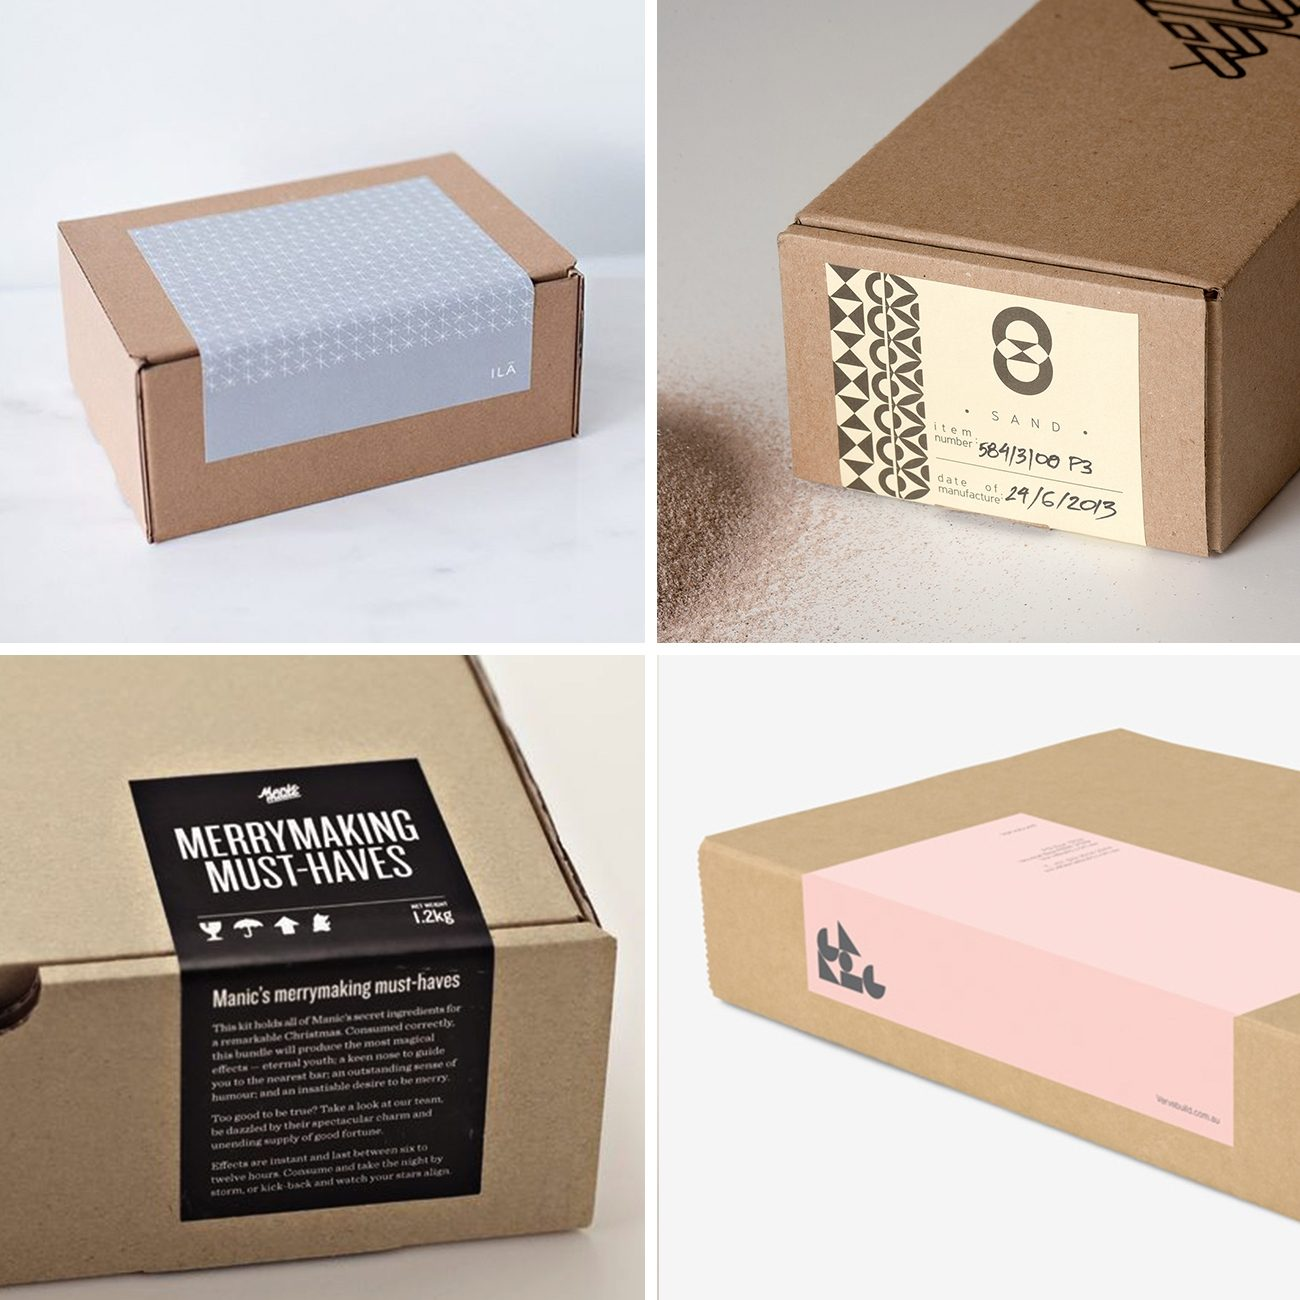 Photos via: Anagrama; Ila; Marios Georntamilis, Nikos Athanasopoulos, and Konstantina Gorgogianni, —, — 60 Ideas to Spruce Up Your Holiday Packaging Design